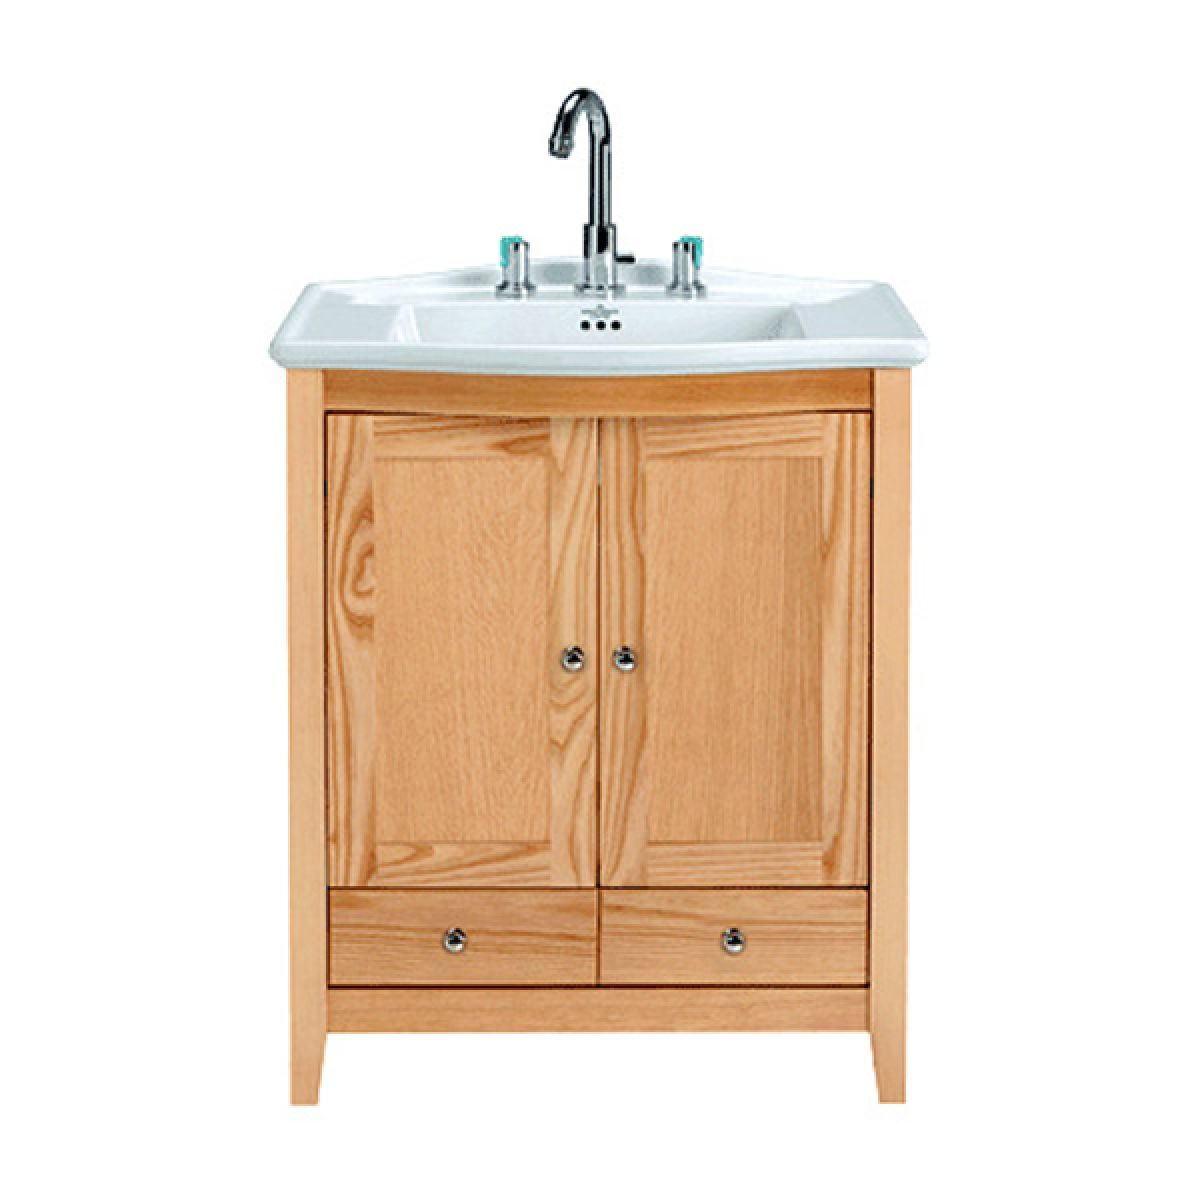 Vanity Unit 2 Tap Hole Basin Compare Bathroom Furniture Prices Ask Home Design